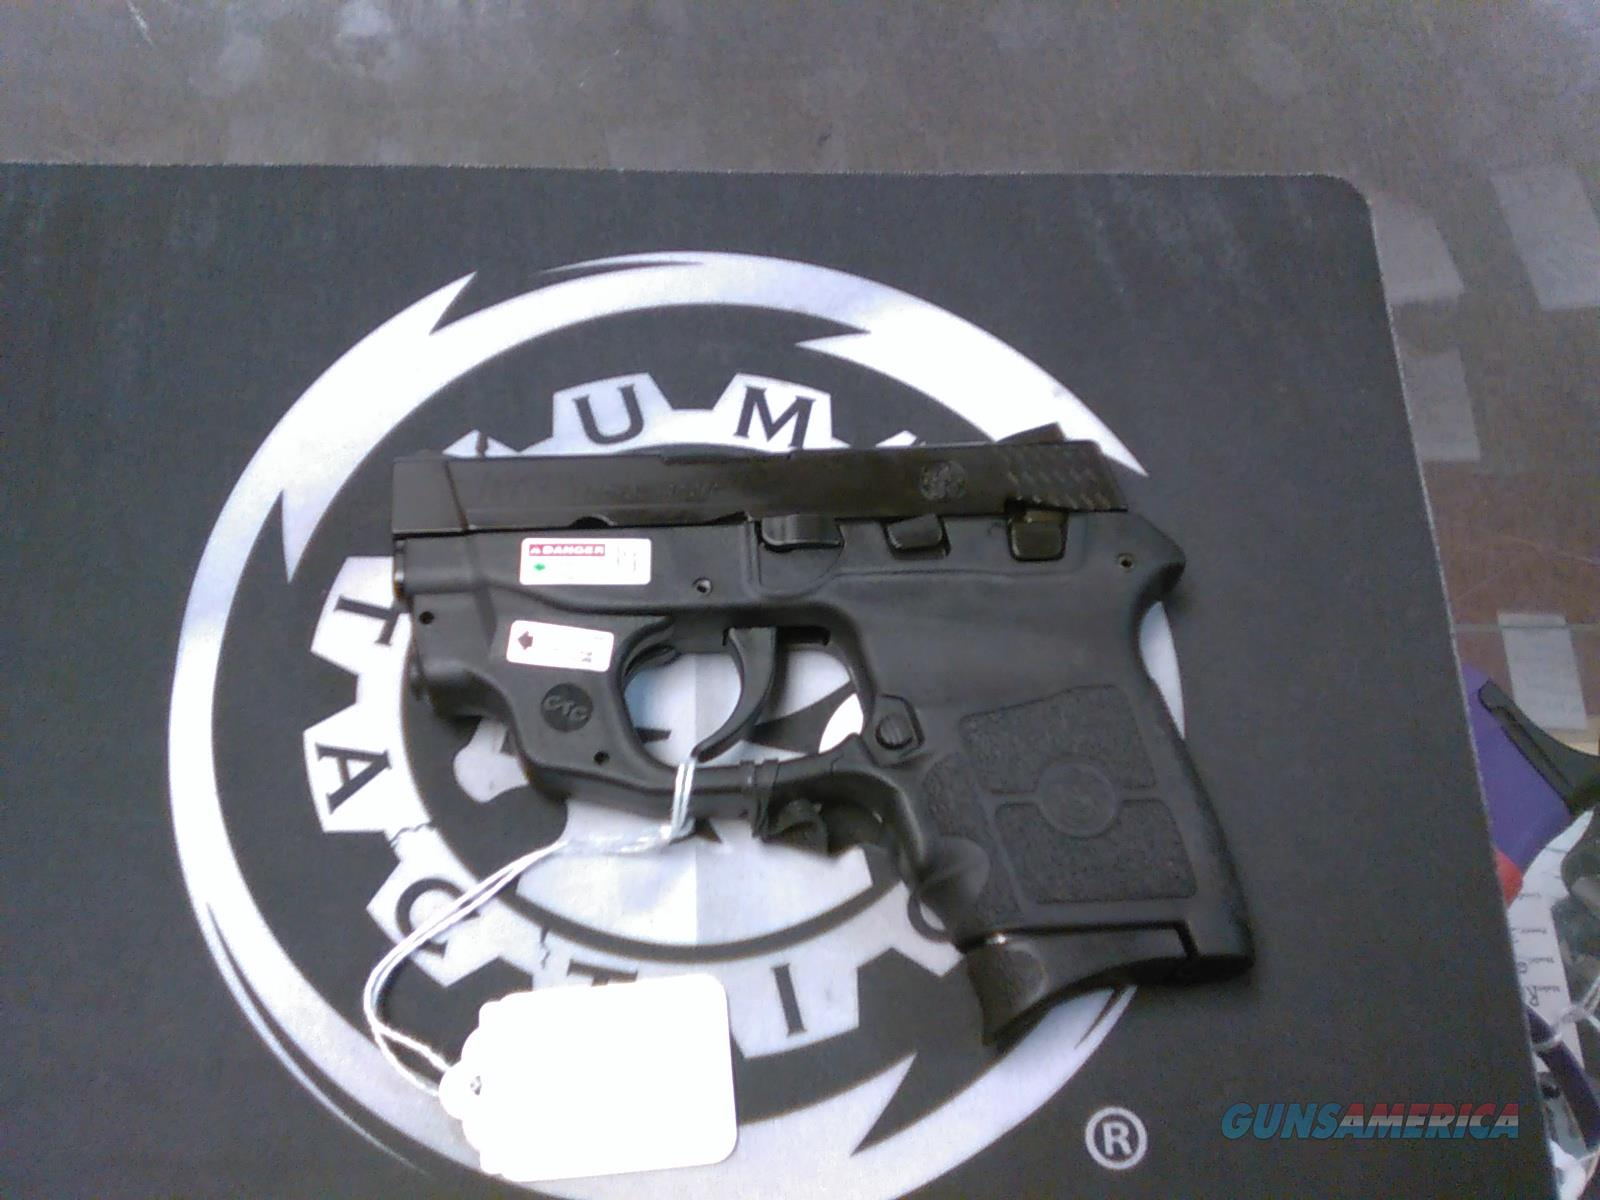 S&W M&P Bodyguard w/ Green CTC Laserguard NO CC FEES  Guns > Pistols > Smith & Wesson Pistols - Autos > Polymer Frame